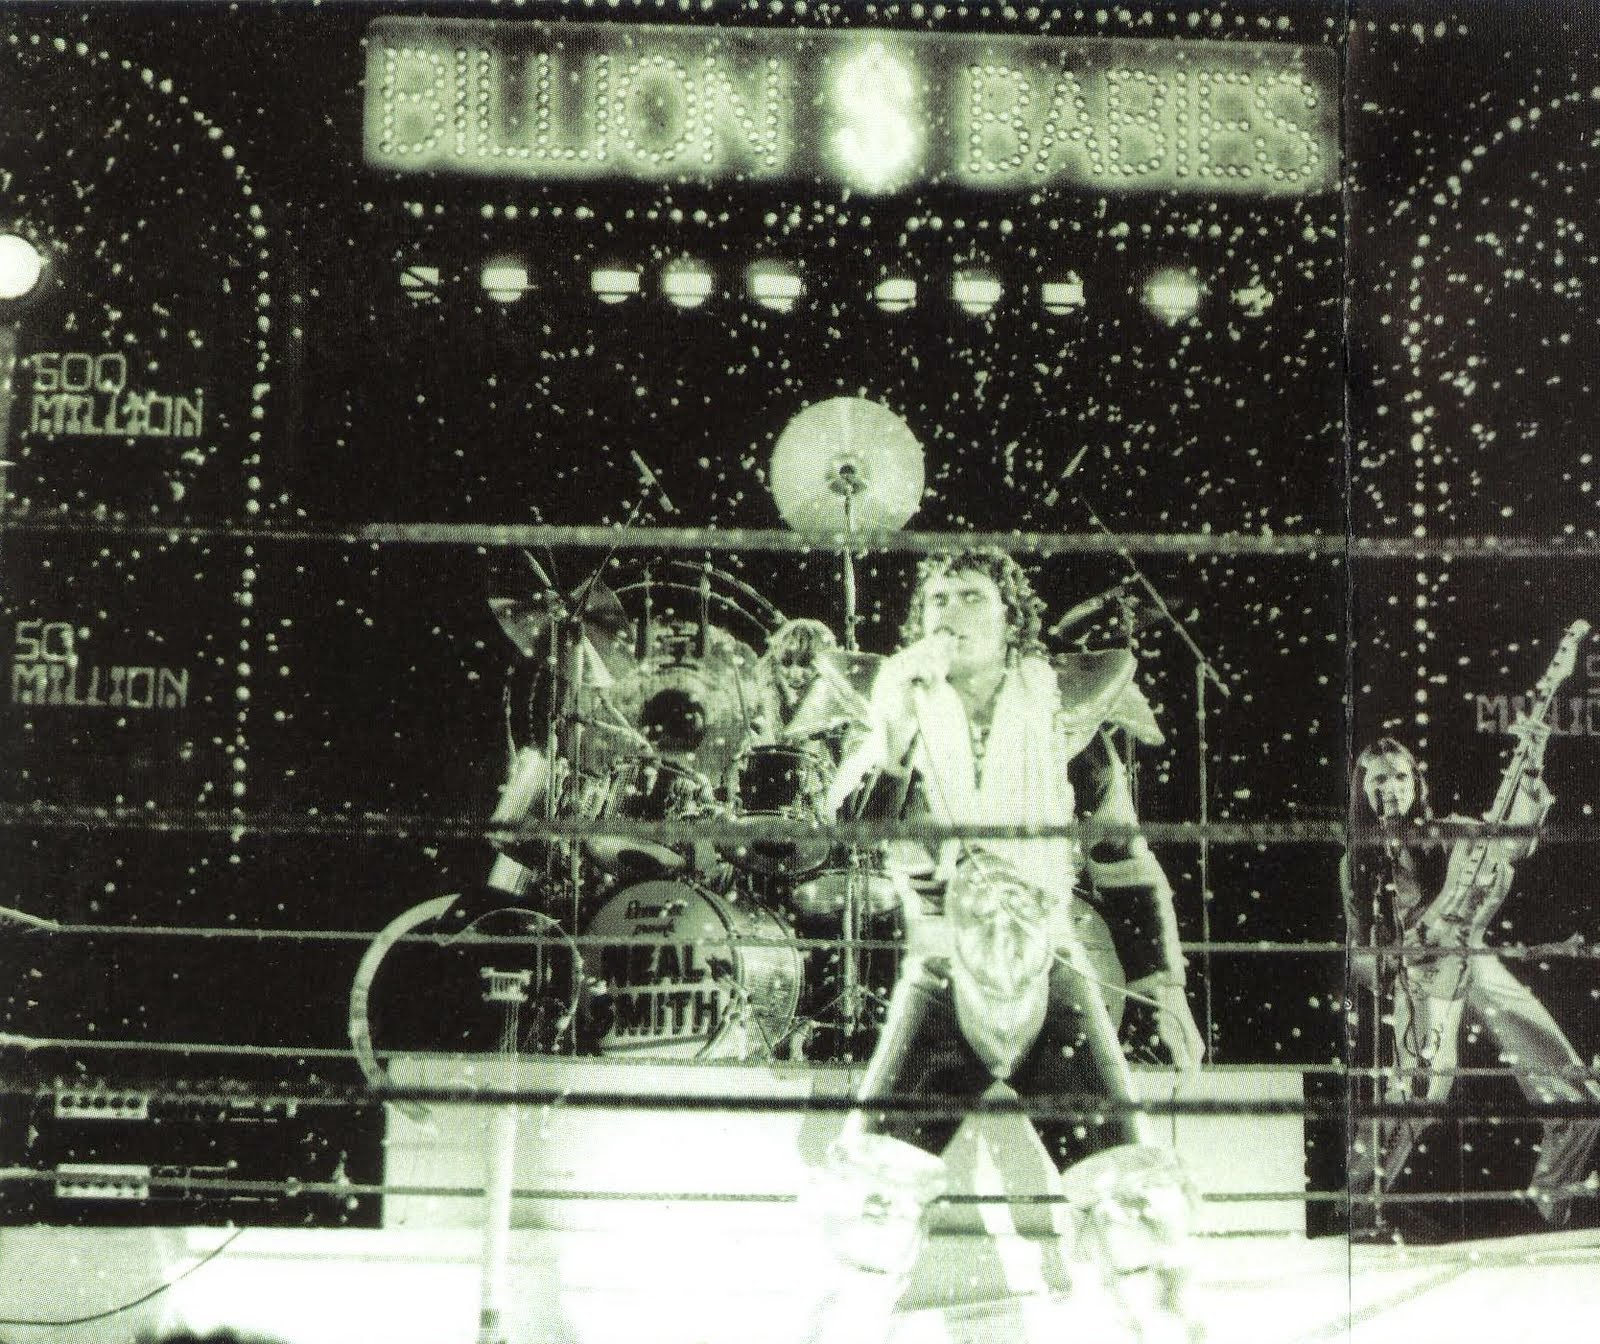 It Was A Tough Go For Billion Dollar Babies And There Is Little On The Internet About Them Here Is One Of The Best Histories On The Band And A Few Rare